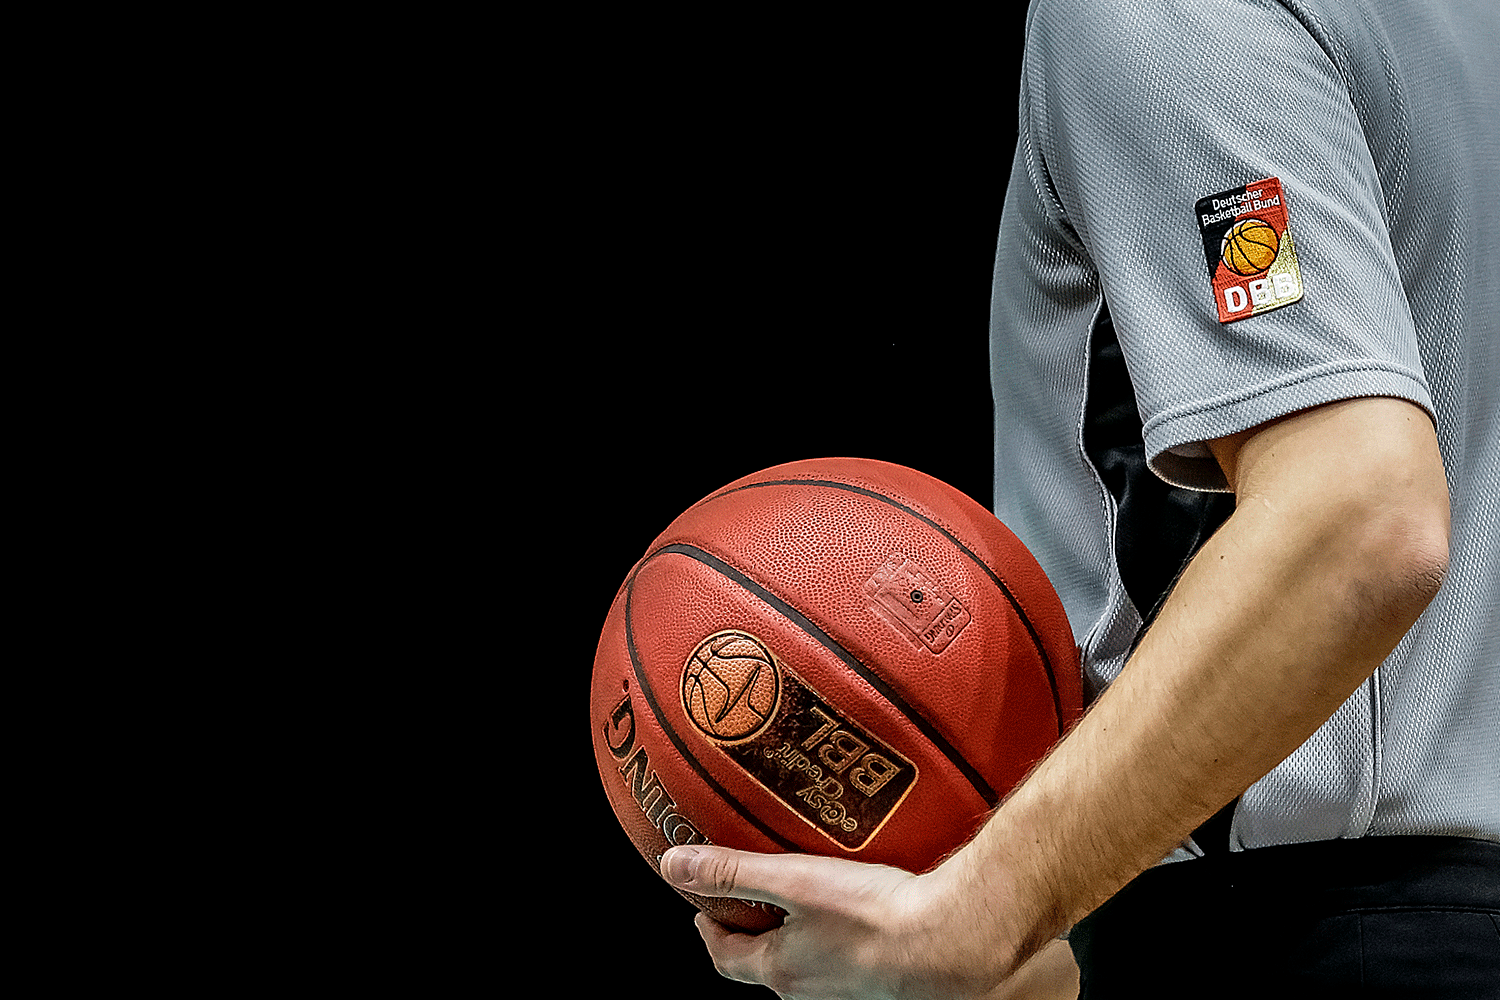 Baskteball Bundesliga referee with official BBL ball